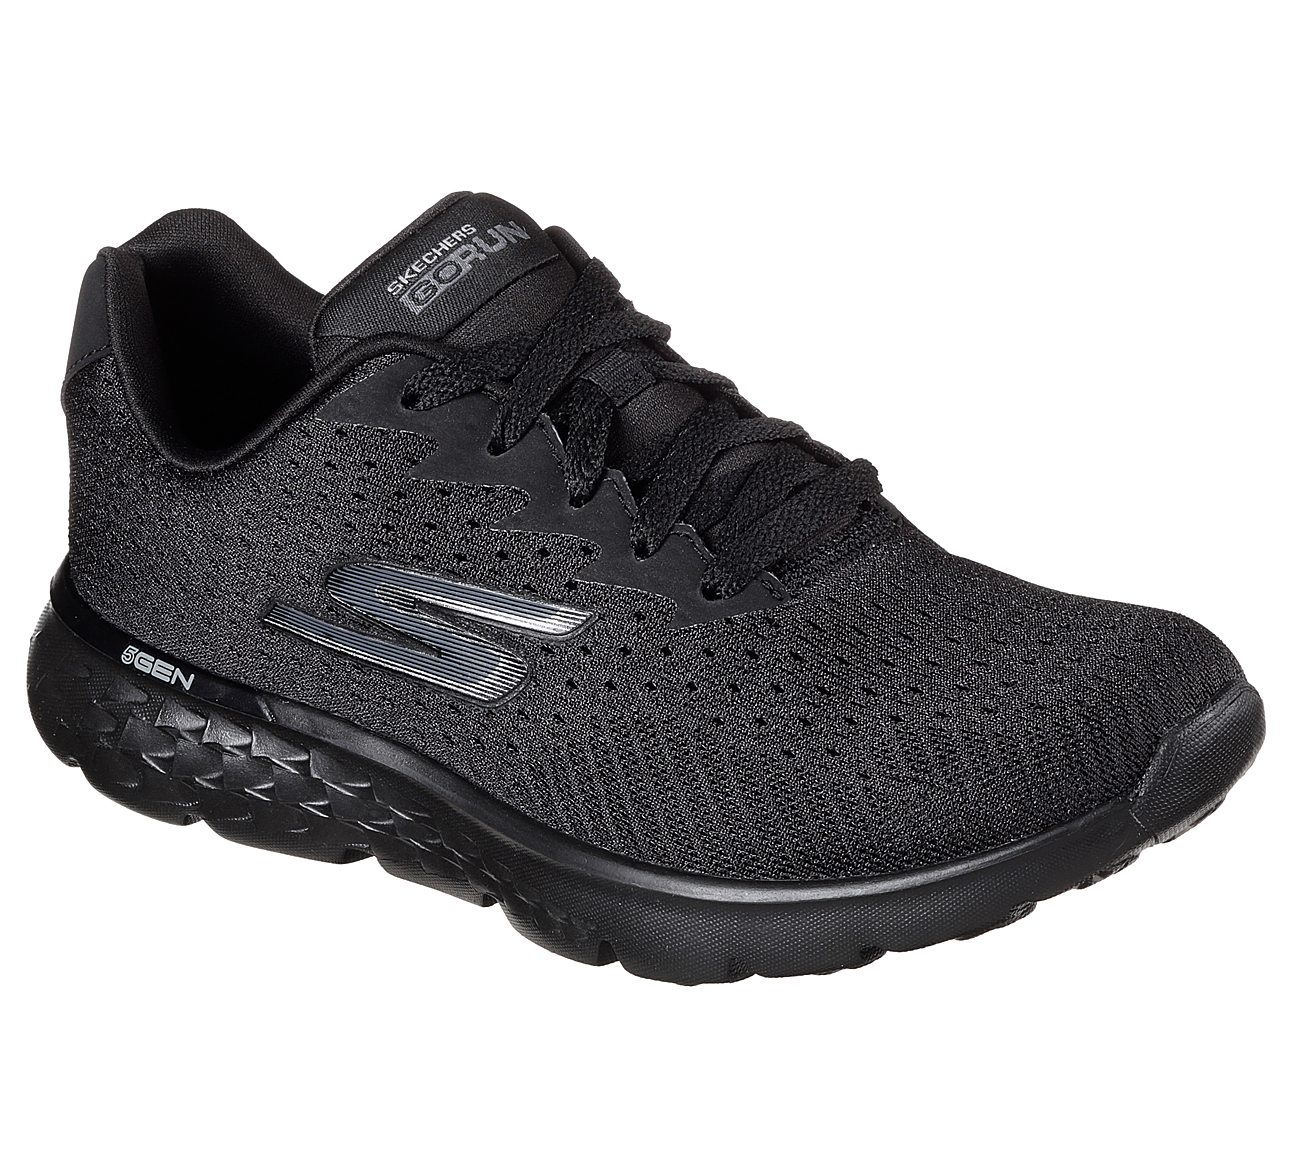 a1b71048427 Buy SKECHERS Skechers GOrun 400 - Sole Skechers Performance Shoes ...